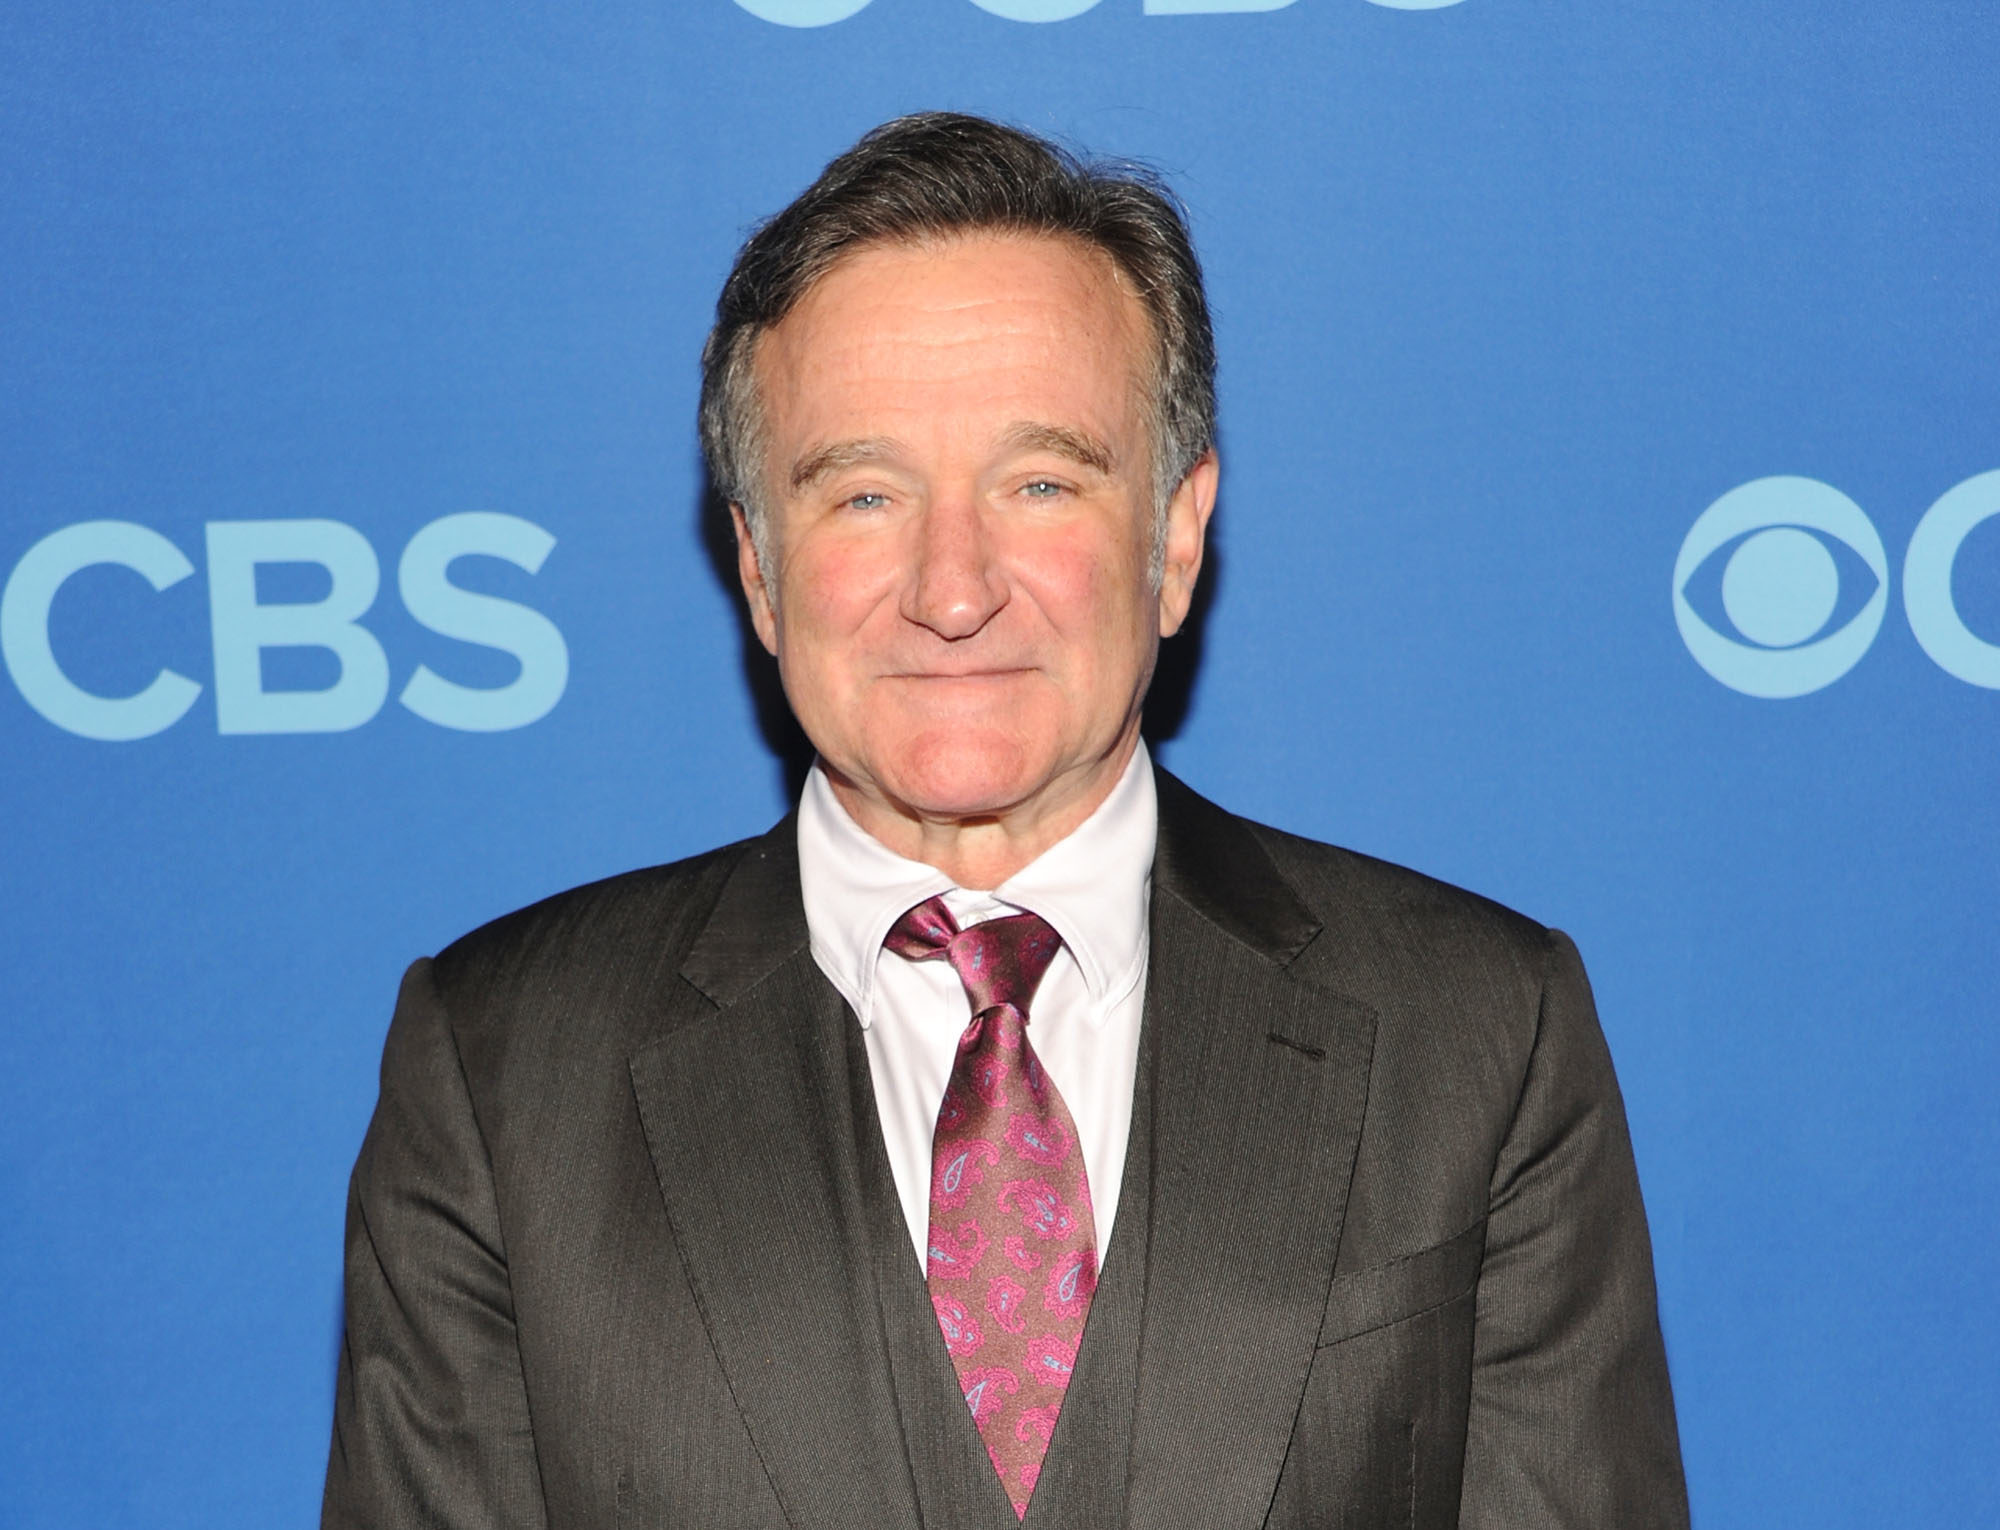 The trailer for HBO's Robin Williams documentary is here, and it is guaranteed to make you cry